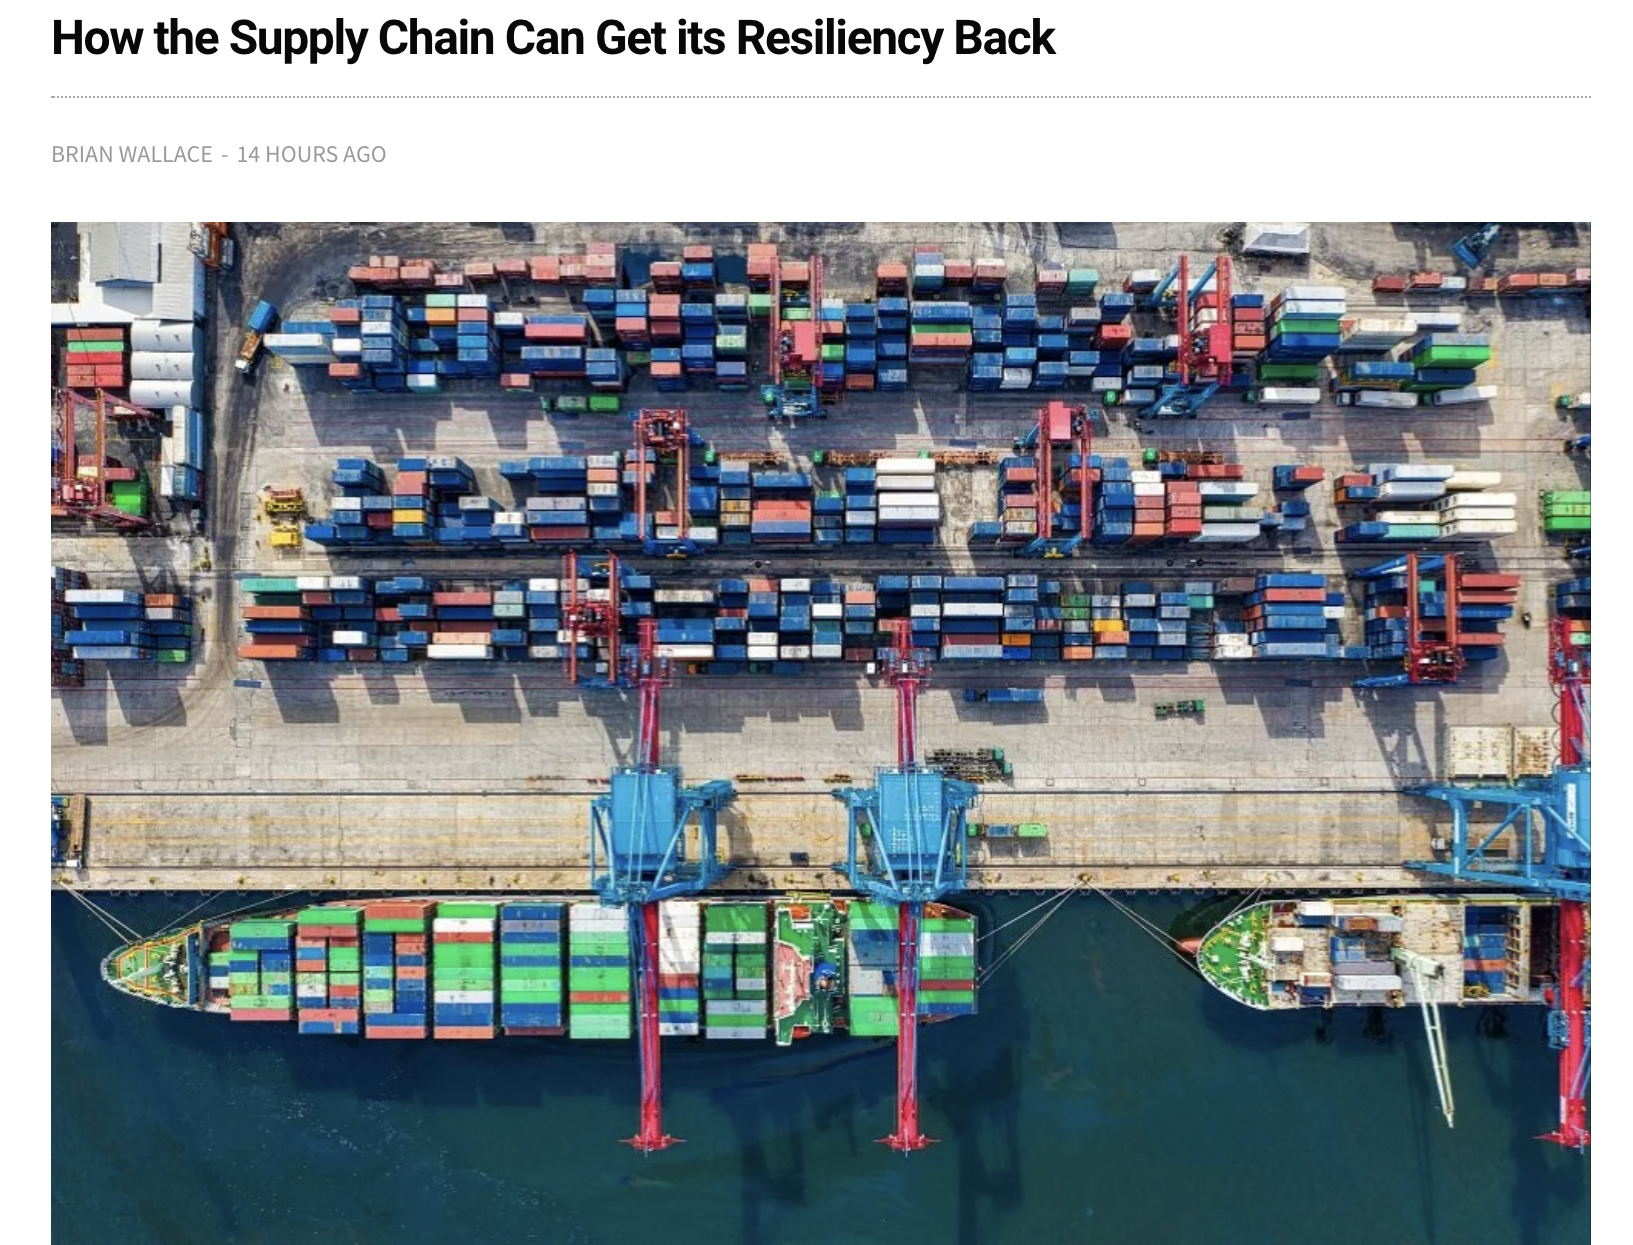 How the Supply Chain Can Get its Resiliency Back